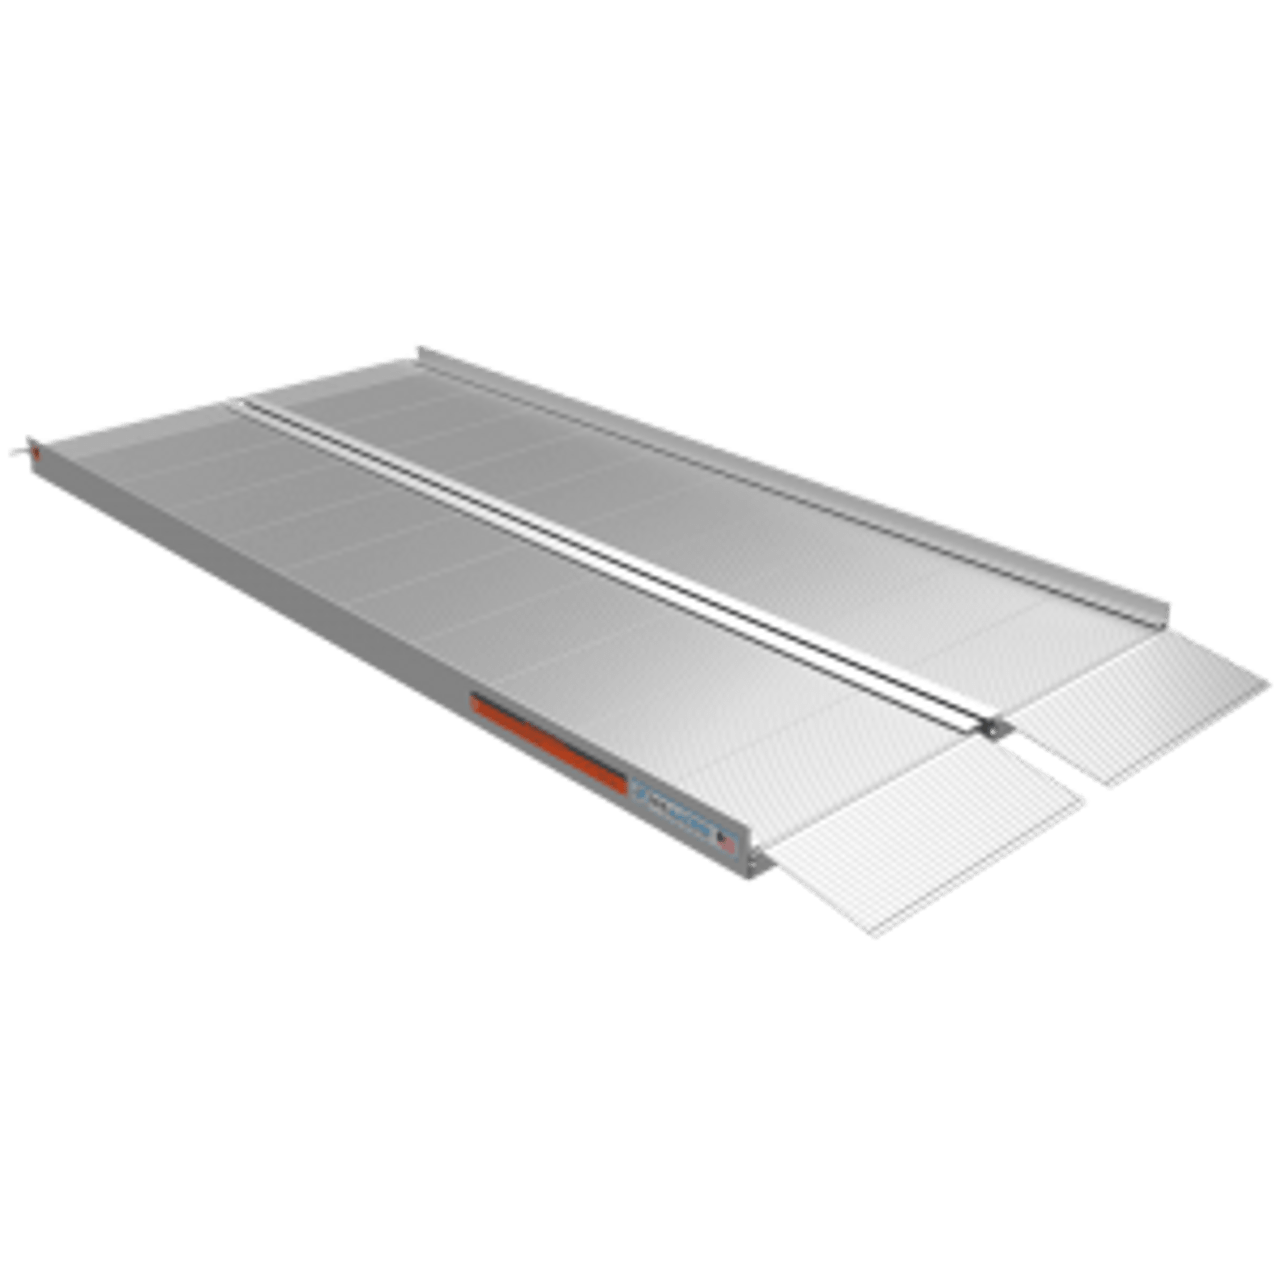 EZ-Access portable single fold wheelchair ramp standard